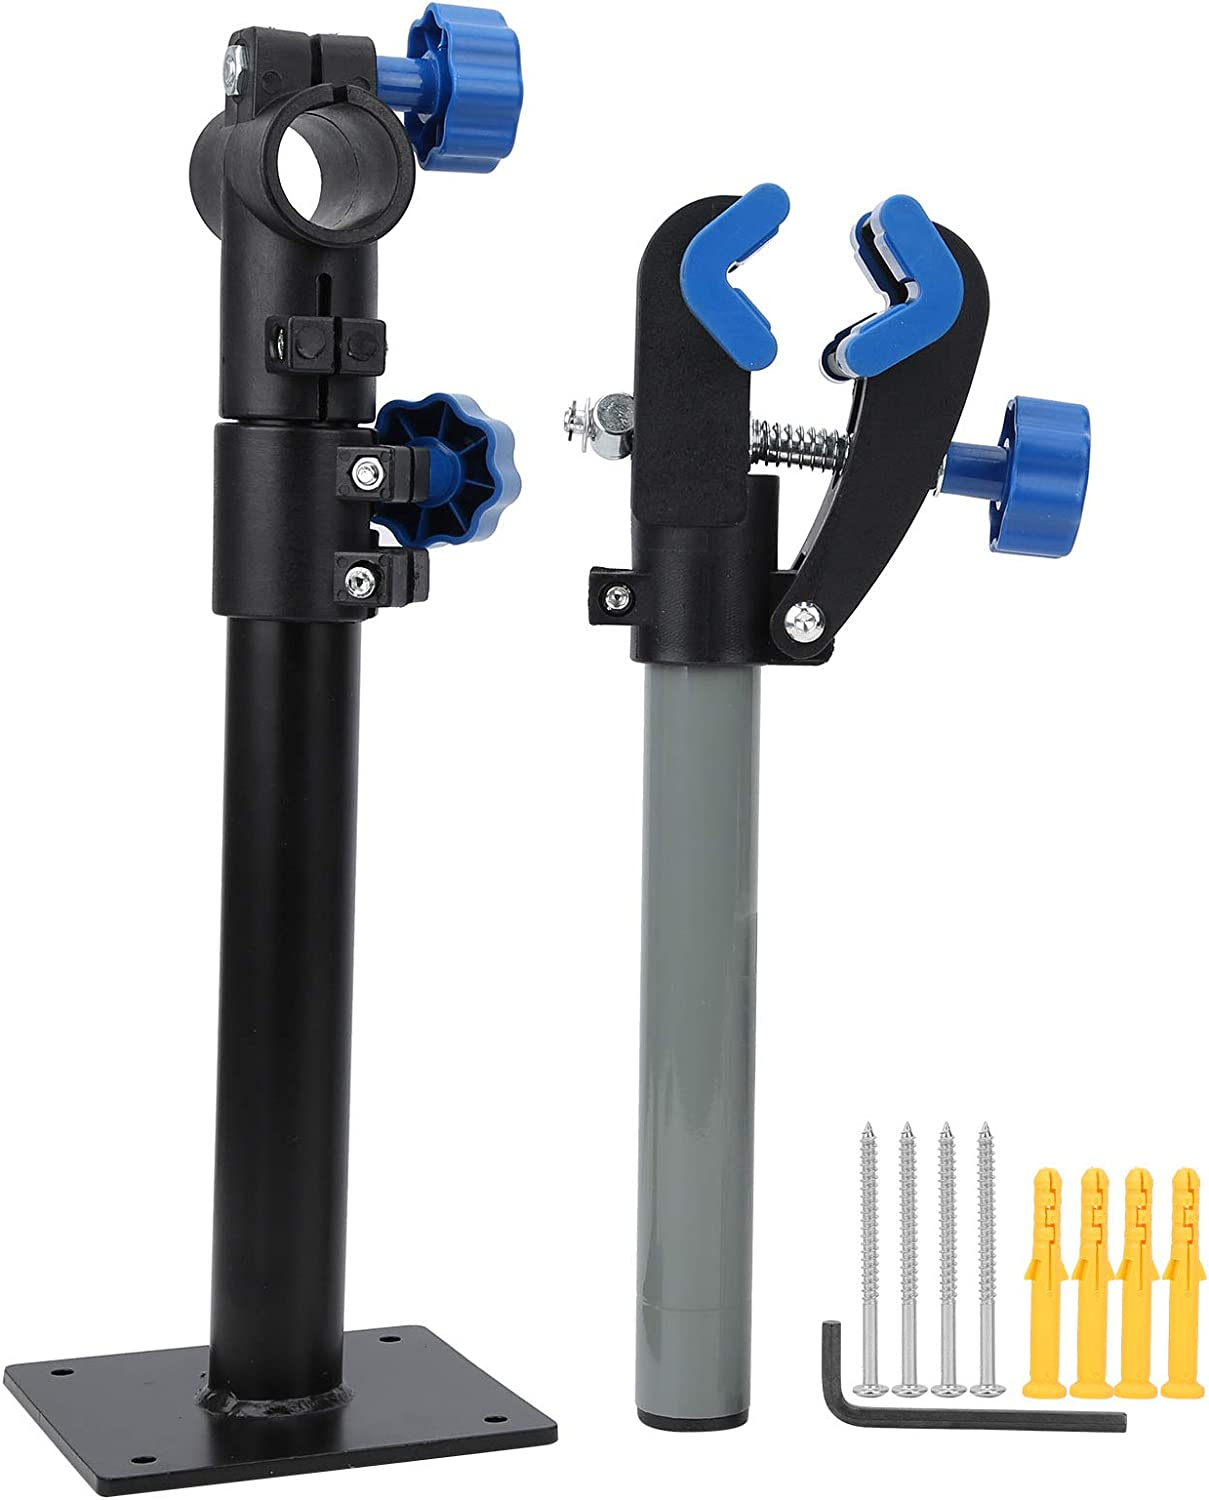 Germerse 1 year Direct sale of manufacturer warranty Bike Repair Stand Workbench Mou Wall